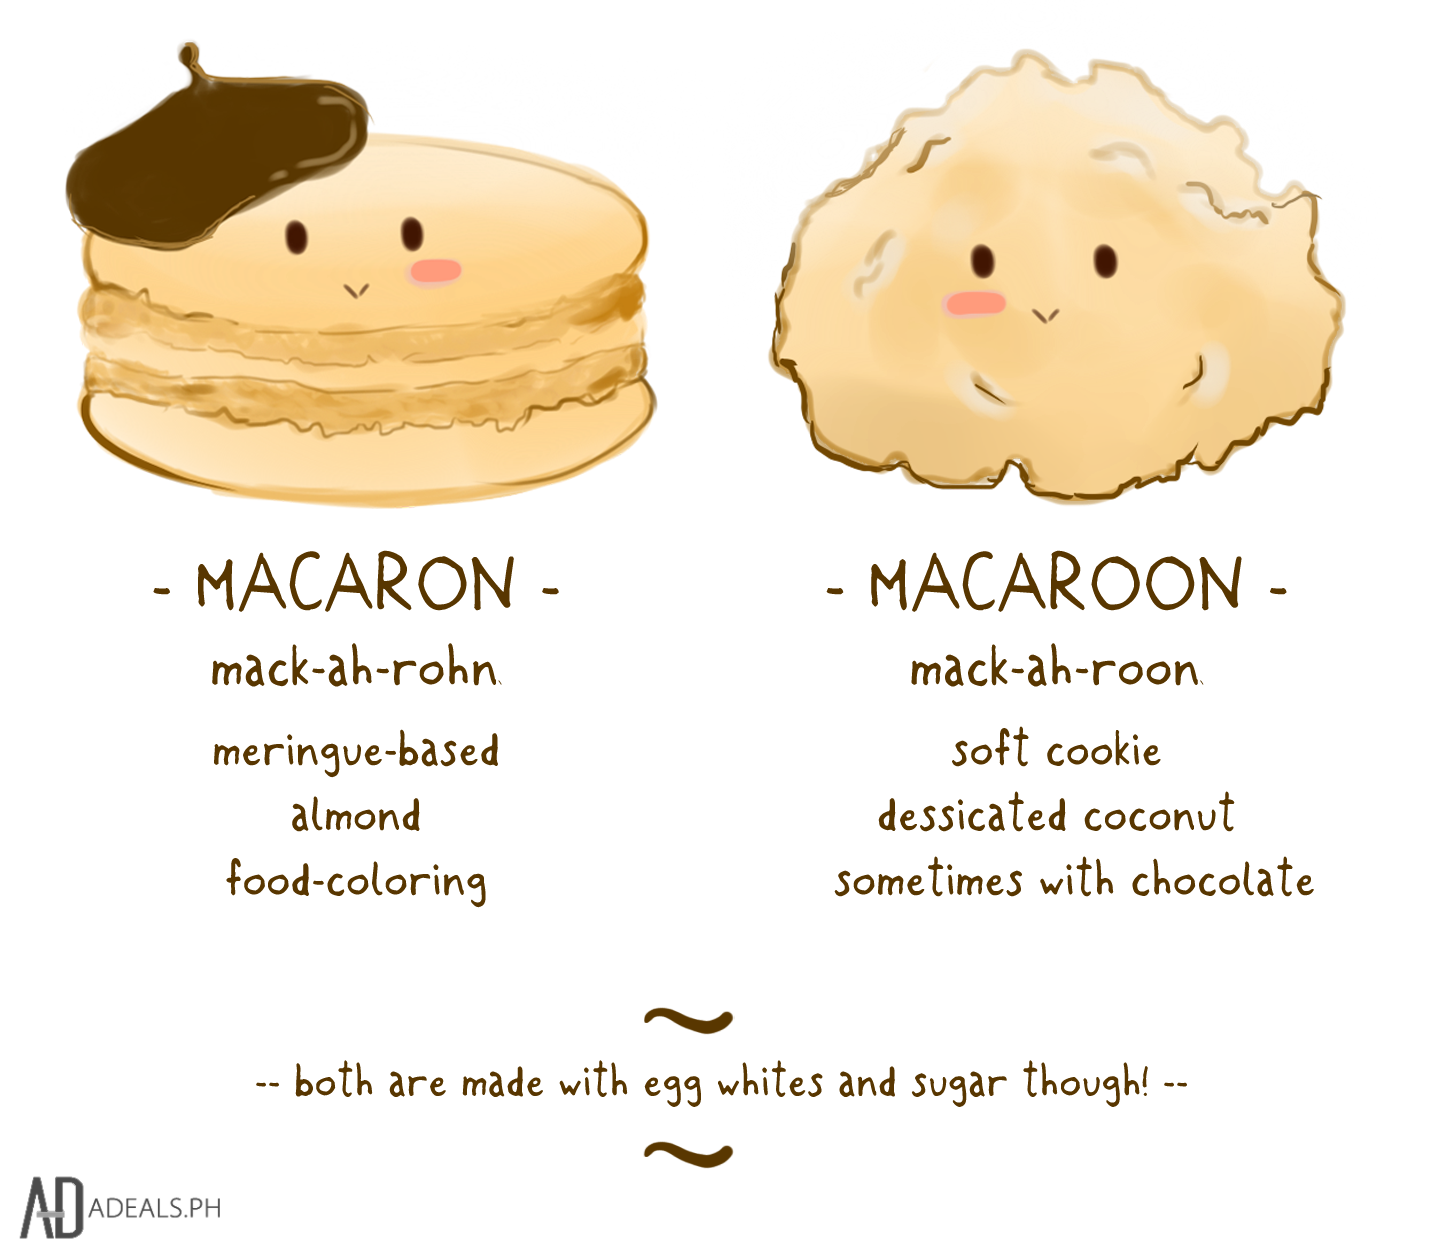 Le Macaron Vs. Macaroon! Know the Difference!